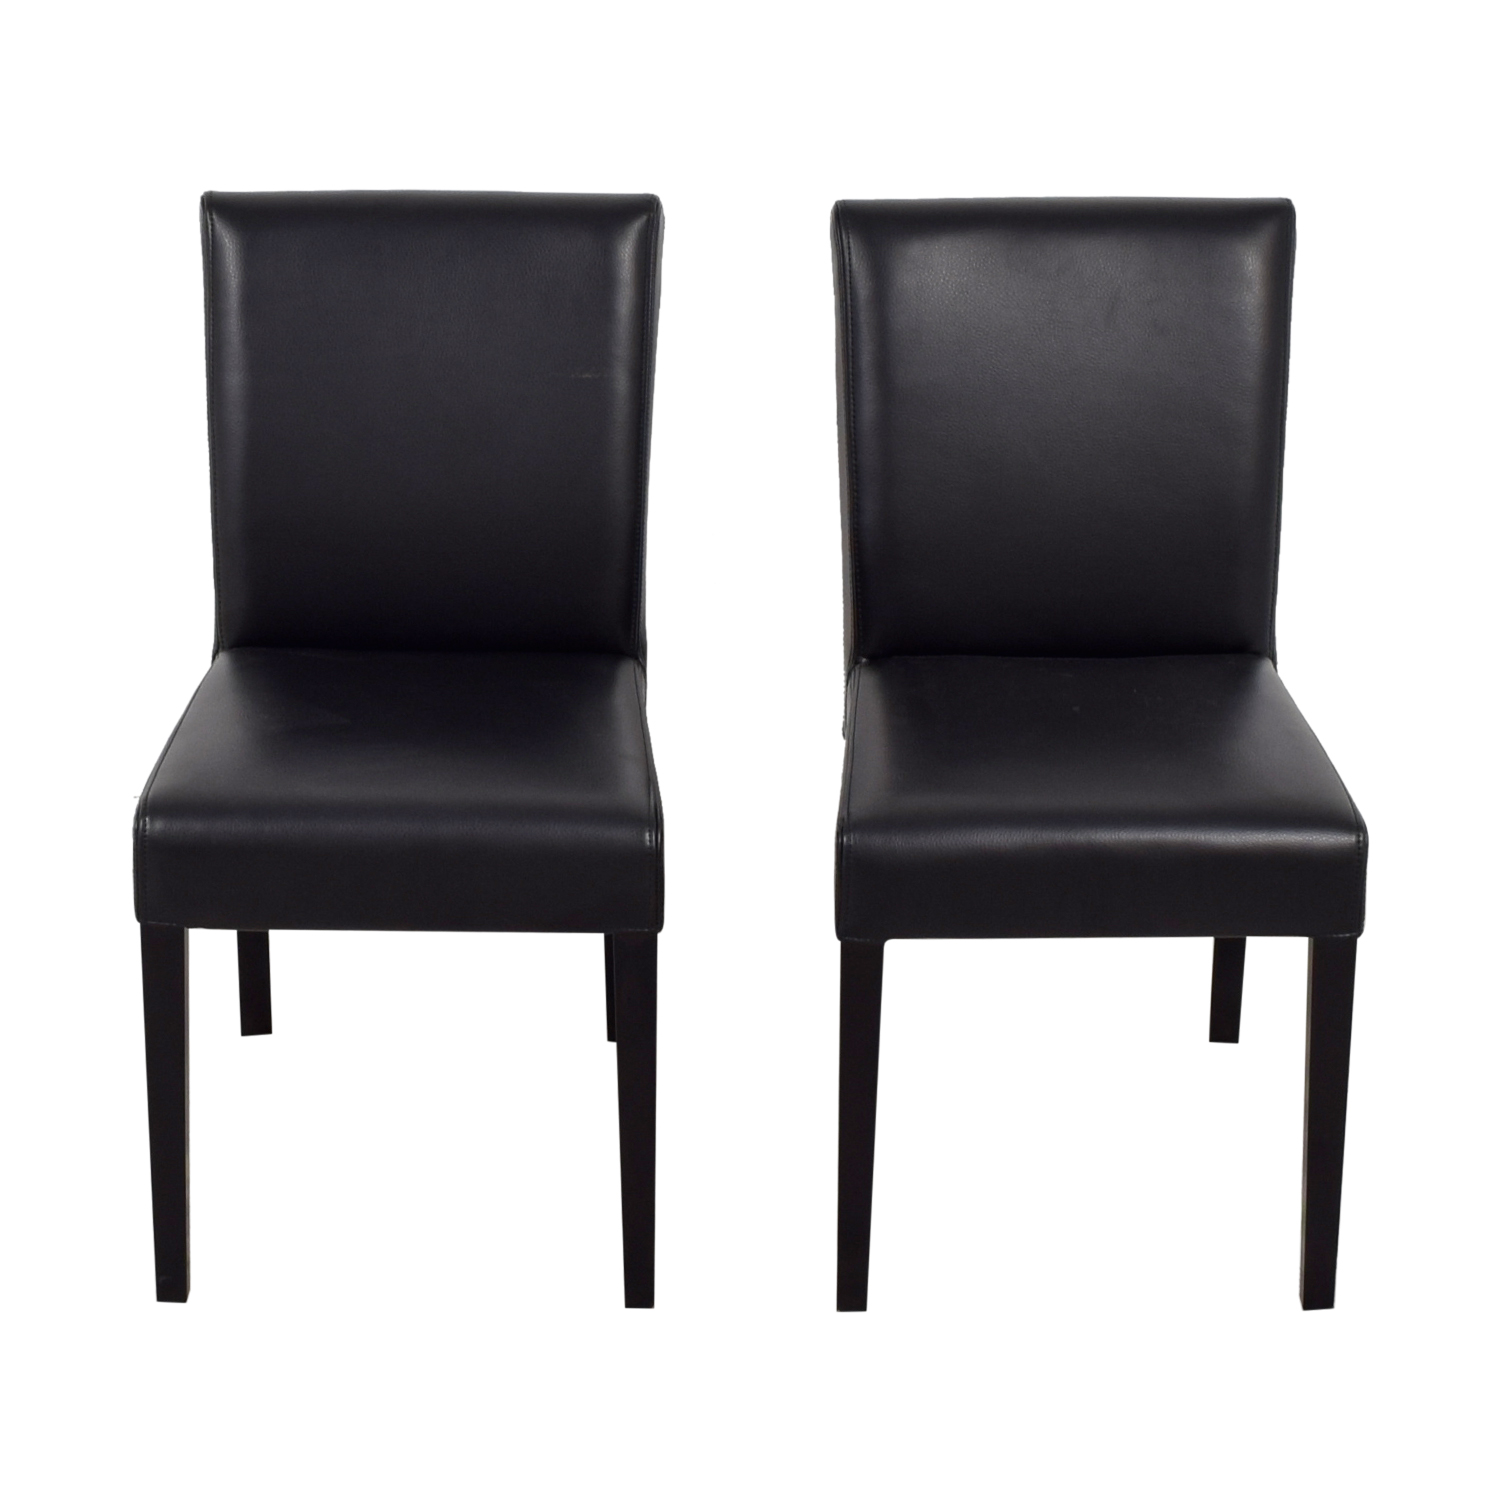 Crate And Barrel Dining Room Chairs: Crate & Barrel Crate & Barrel Lowe Black Leather